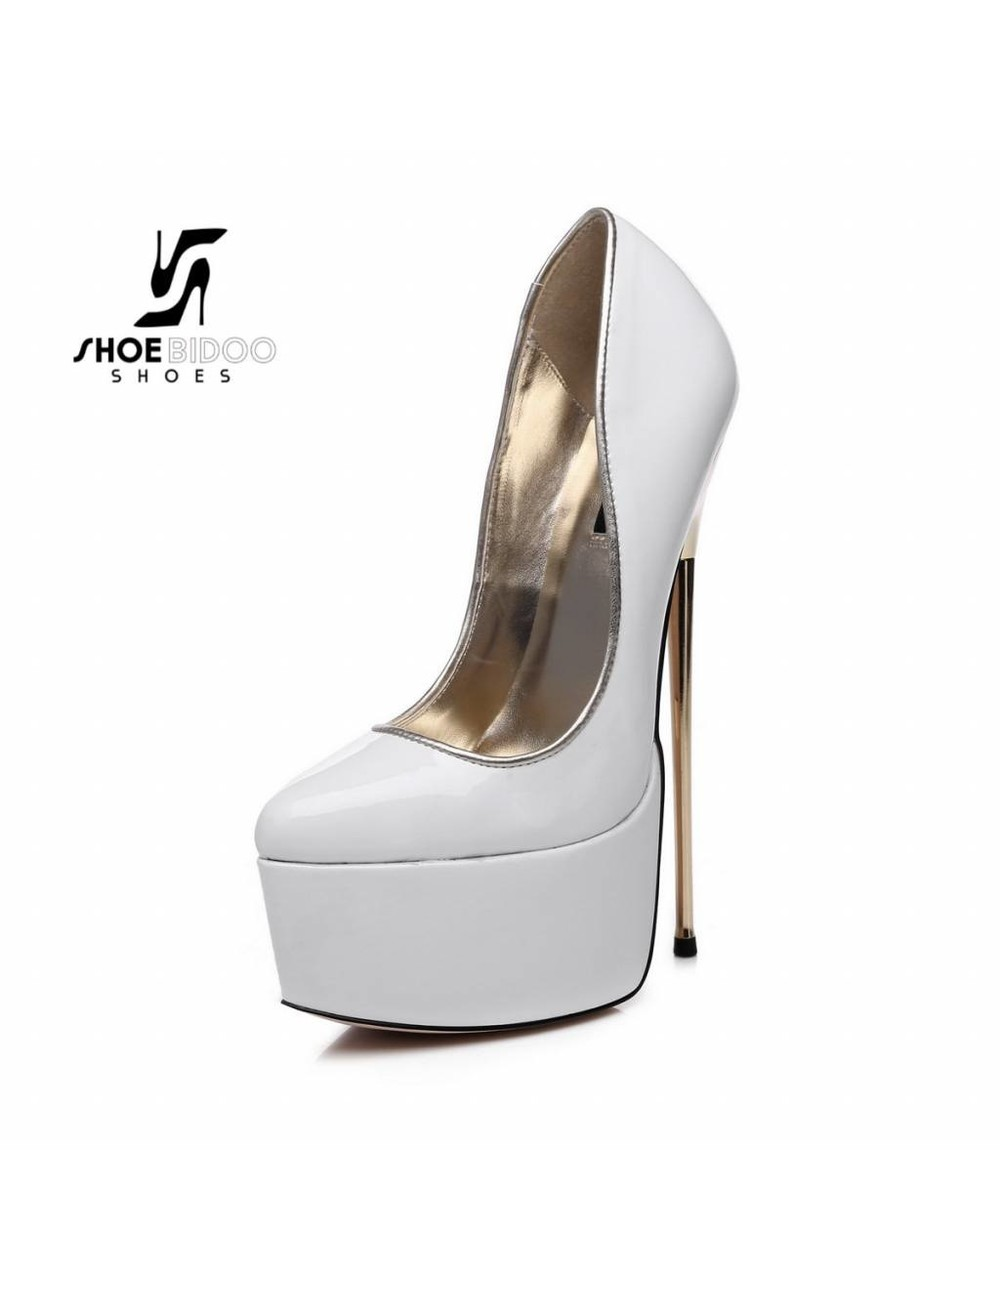 SLICK White lacquer platform pumps with ultra high gold metal heels